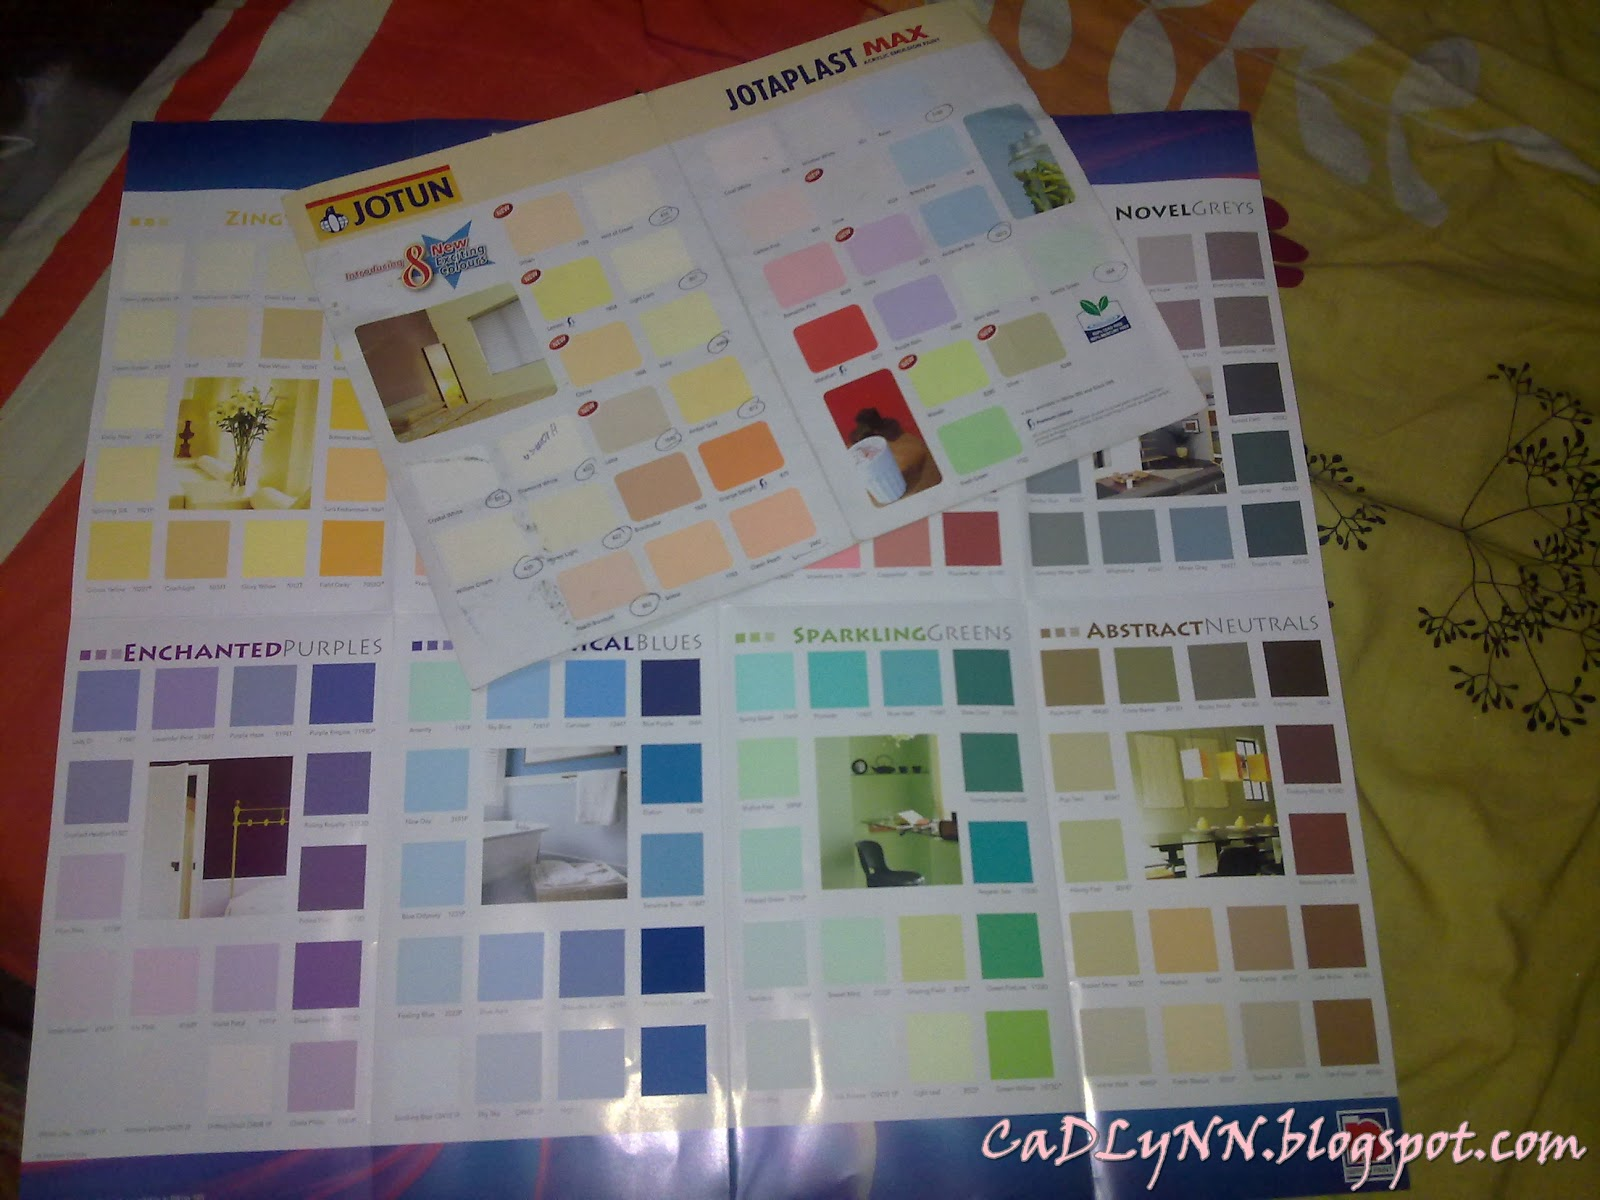 harga supplier dulux cat 2012 70 cat cat cat